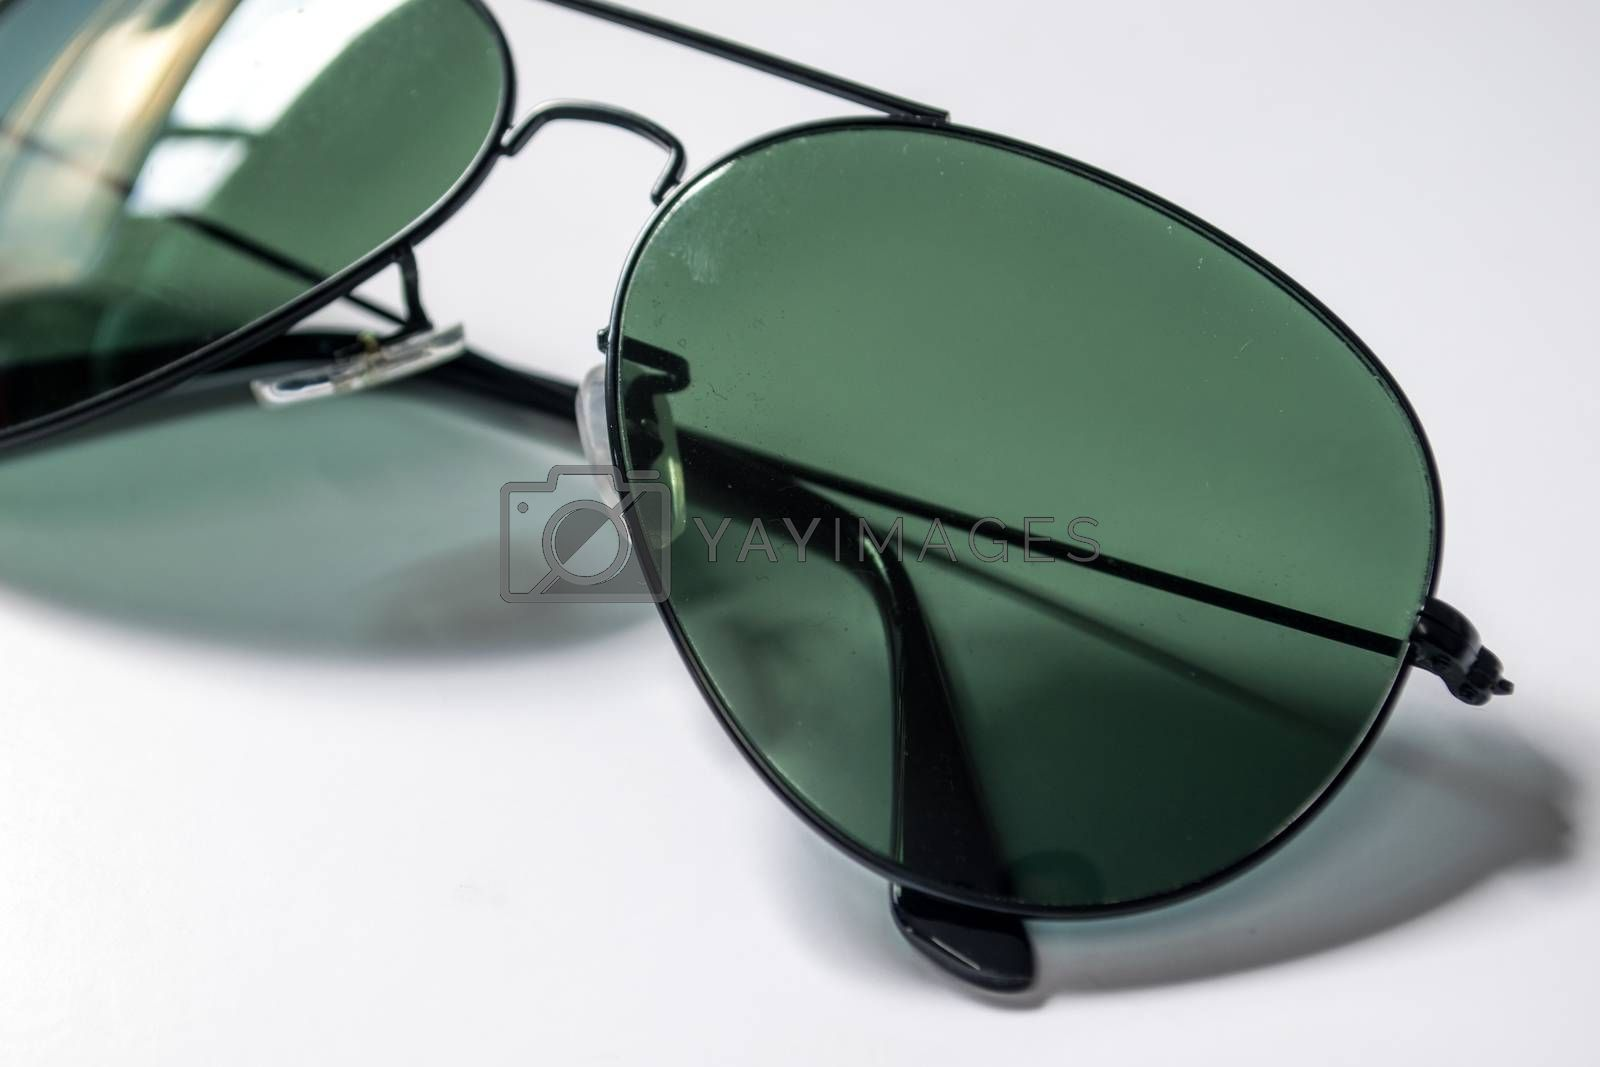 glasses tinted to protect the eyes from sunlight or glare.